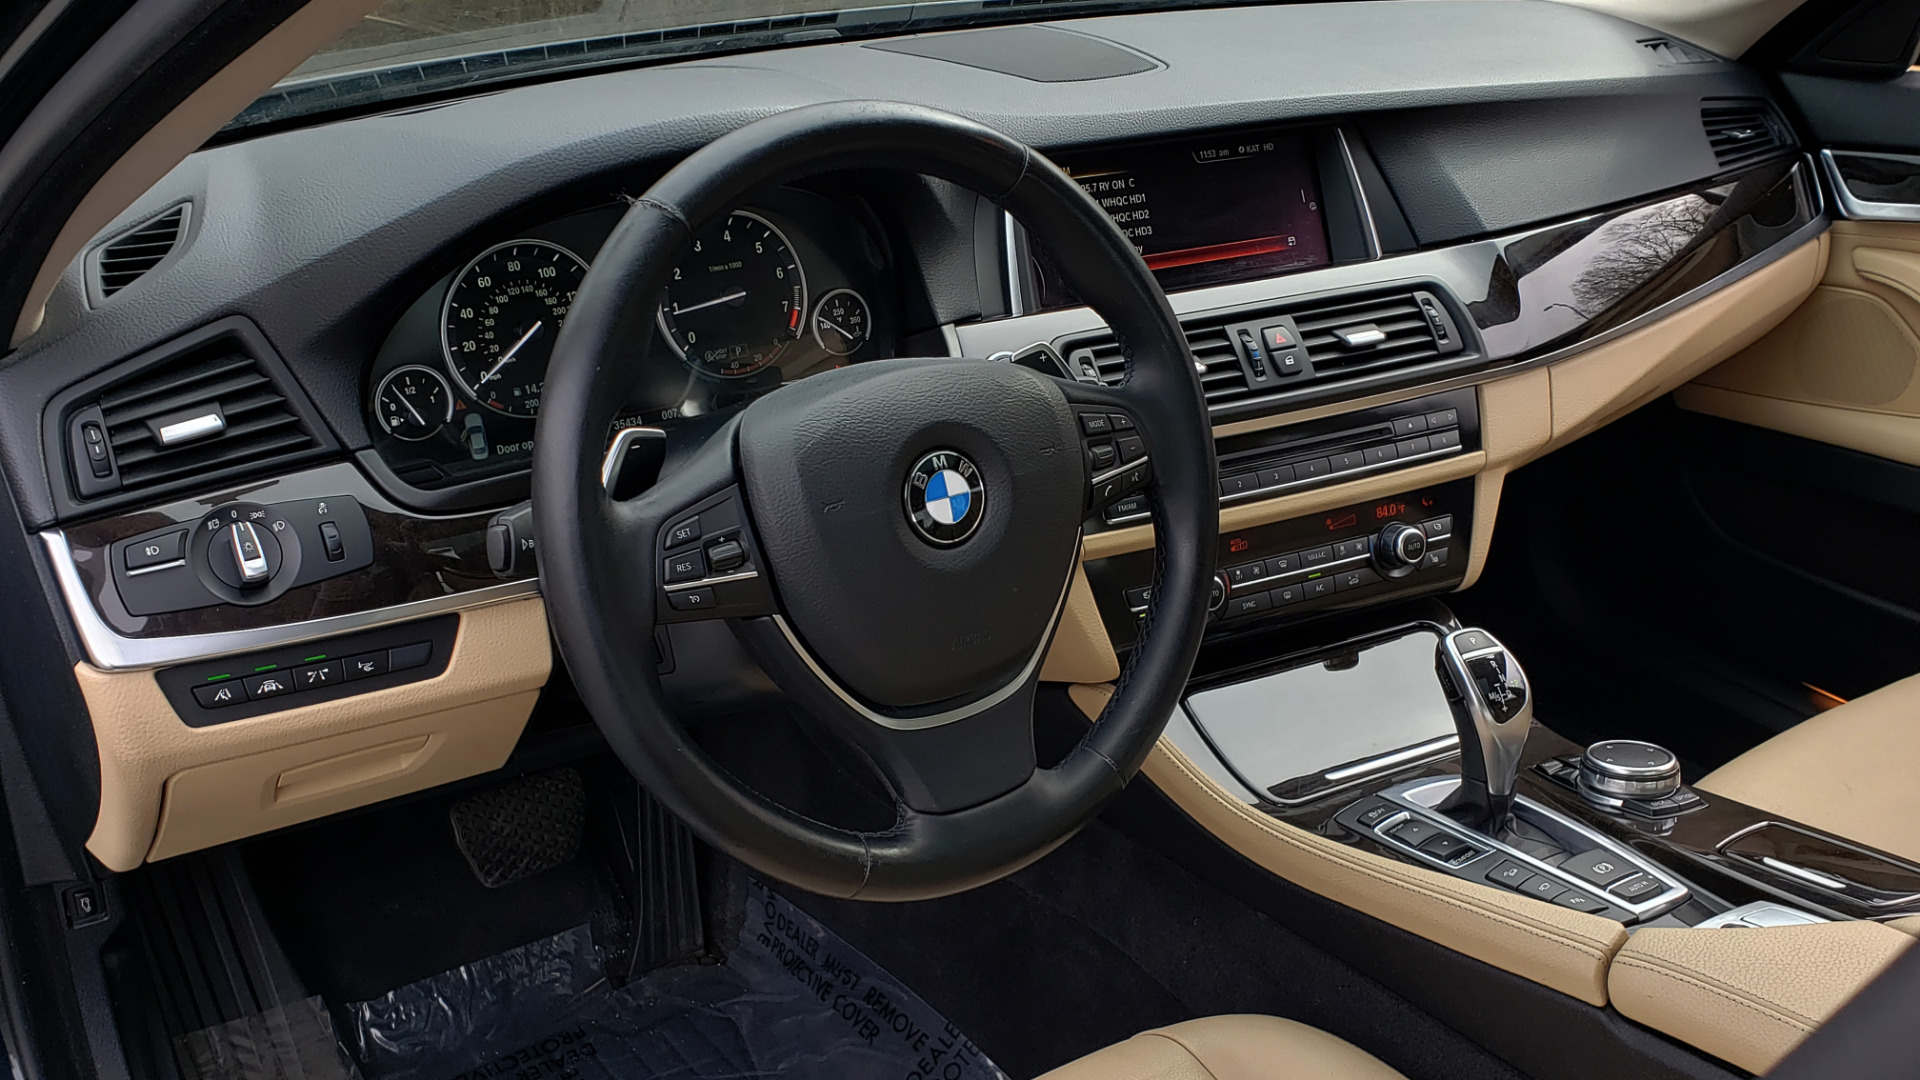 Used 2016 BMW 5 SERIES 528i XDRIVE / PREM PKG / DRVR ASST PLUS / LUXURY / COLD WTHR for sale Sold at Formula Imports in Charlotte NC 28227 39